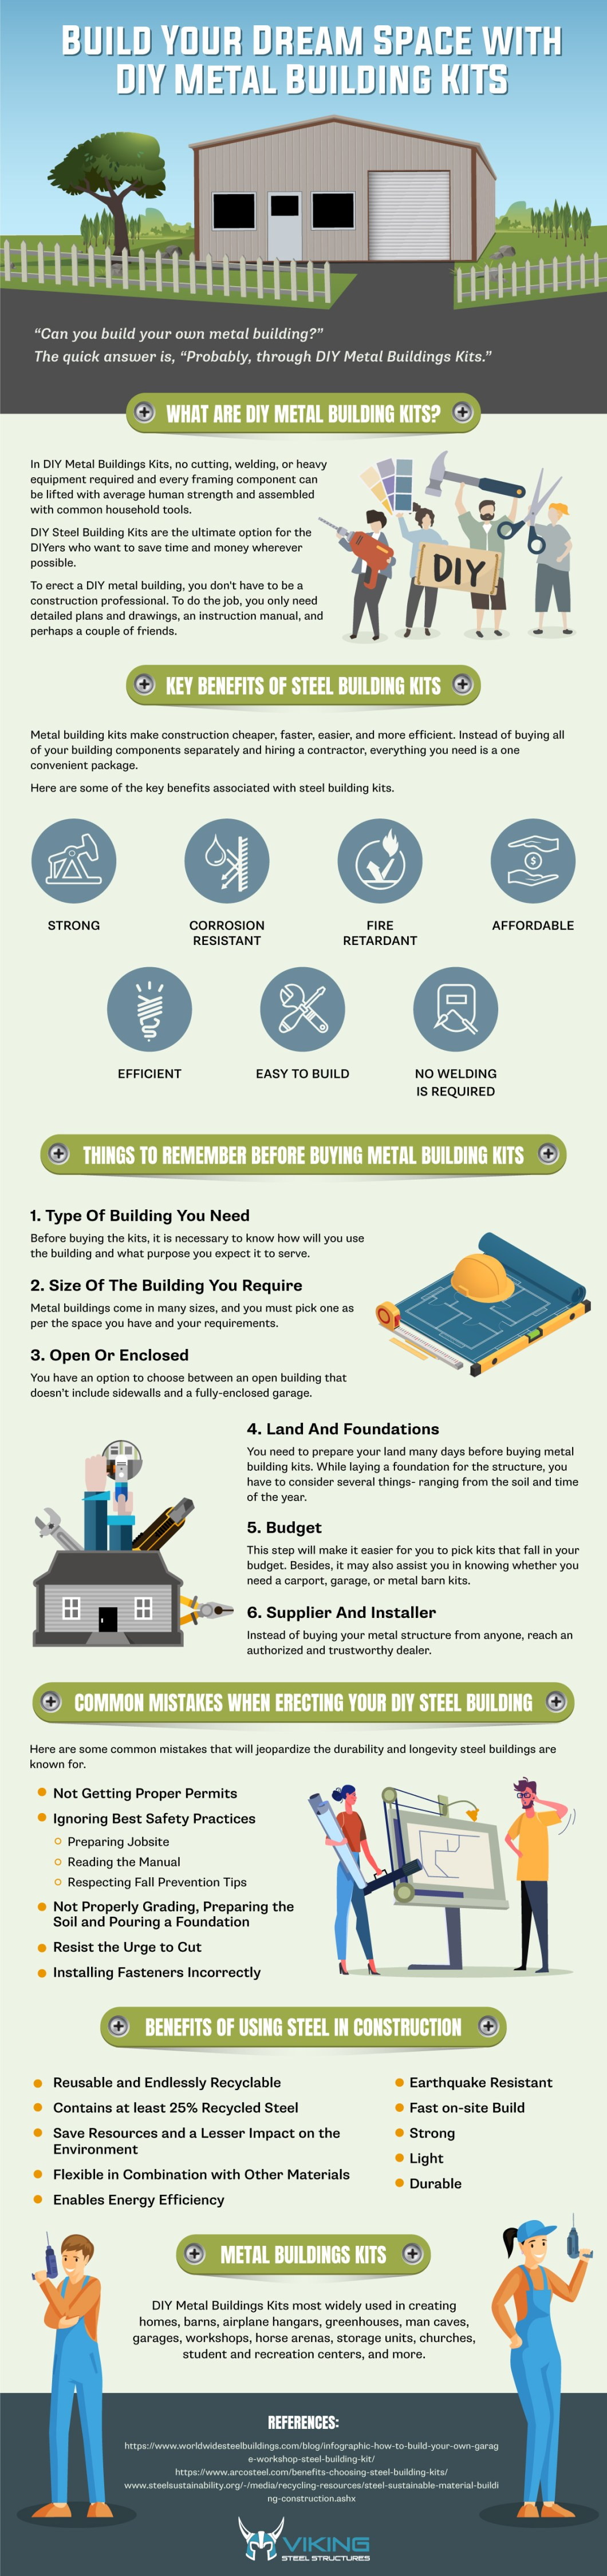 DIY: How To Build A Metal Building - Infographic